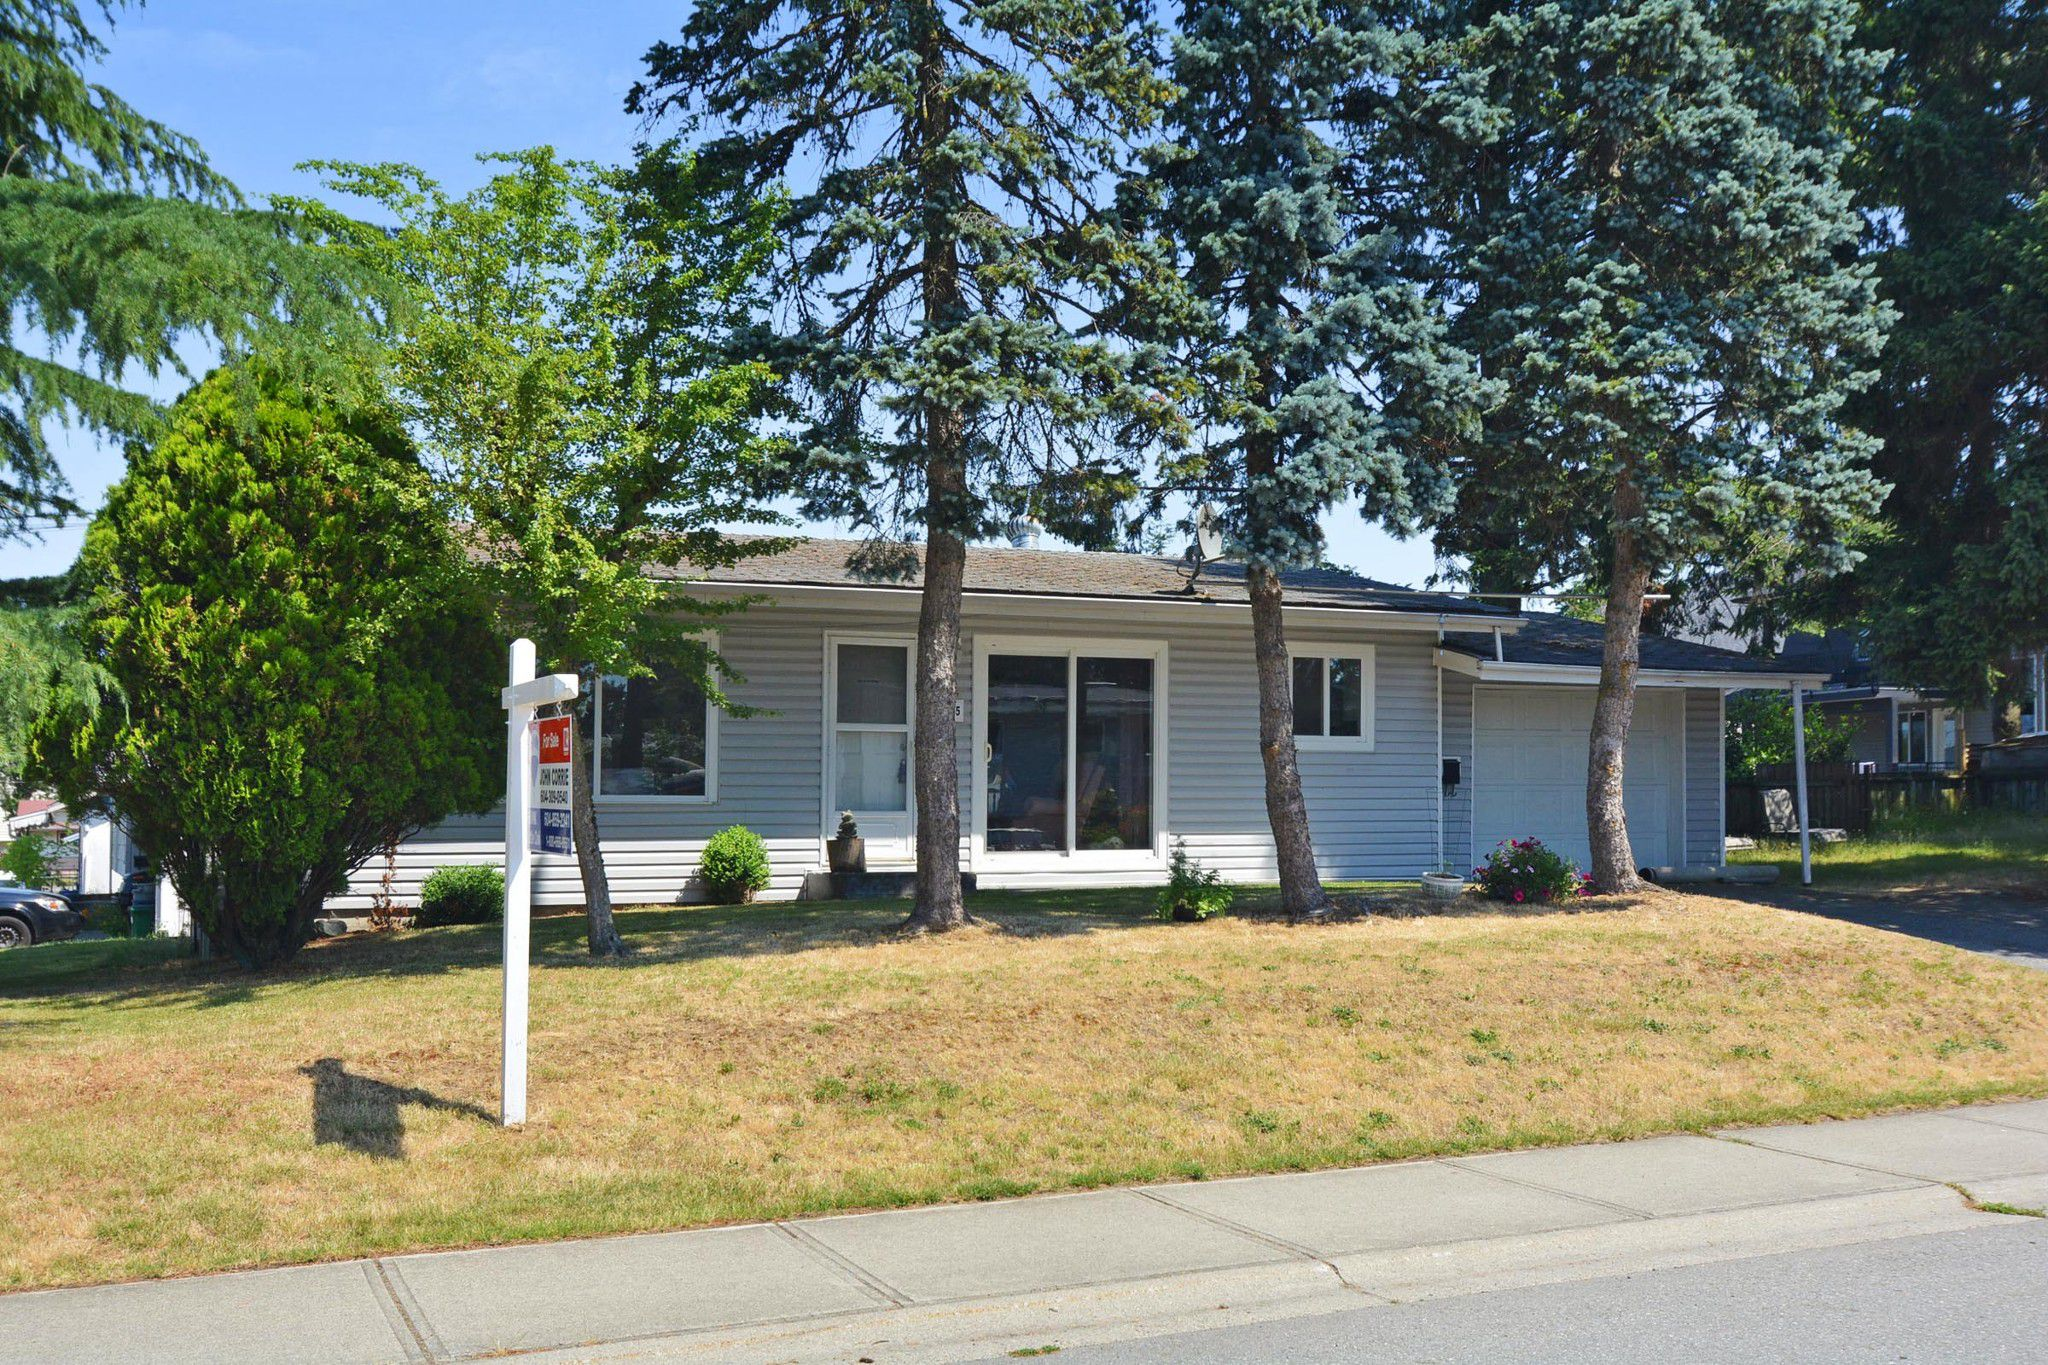 Main Photo: 32065 DORMICK Avenue in Abbotsford: Abbotsford West House for sale : MLS®# R2280732